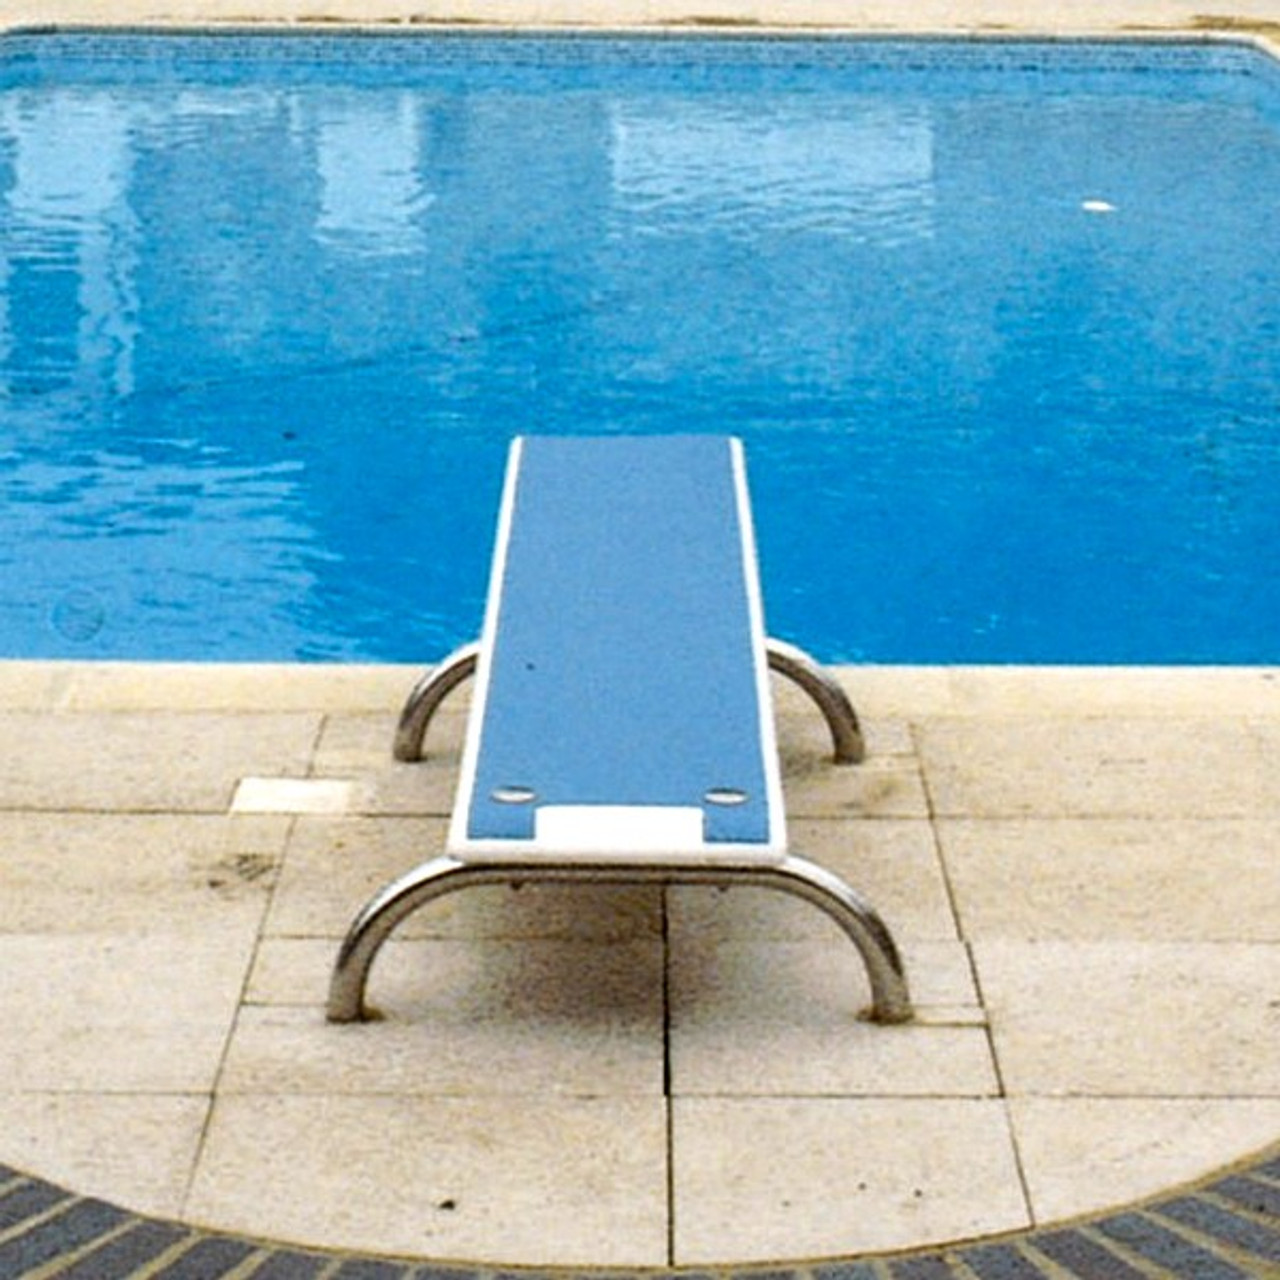 Kestrel Swimming Pool Diving Board with Stainless Steel Stanchions